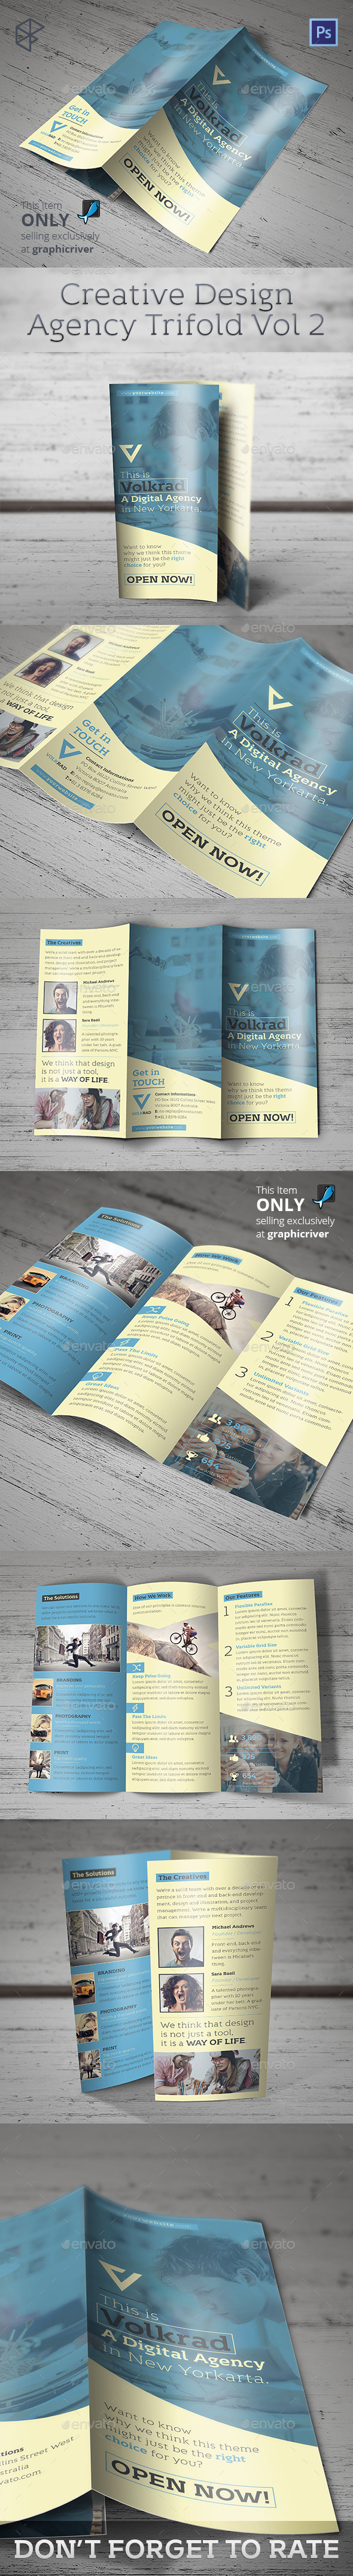 Creative Design Agency Trifold Vol 2 - Corporate Brochures